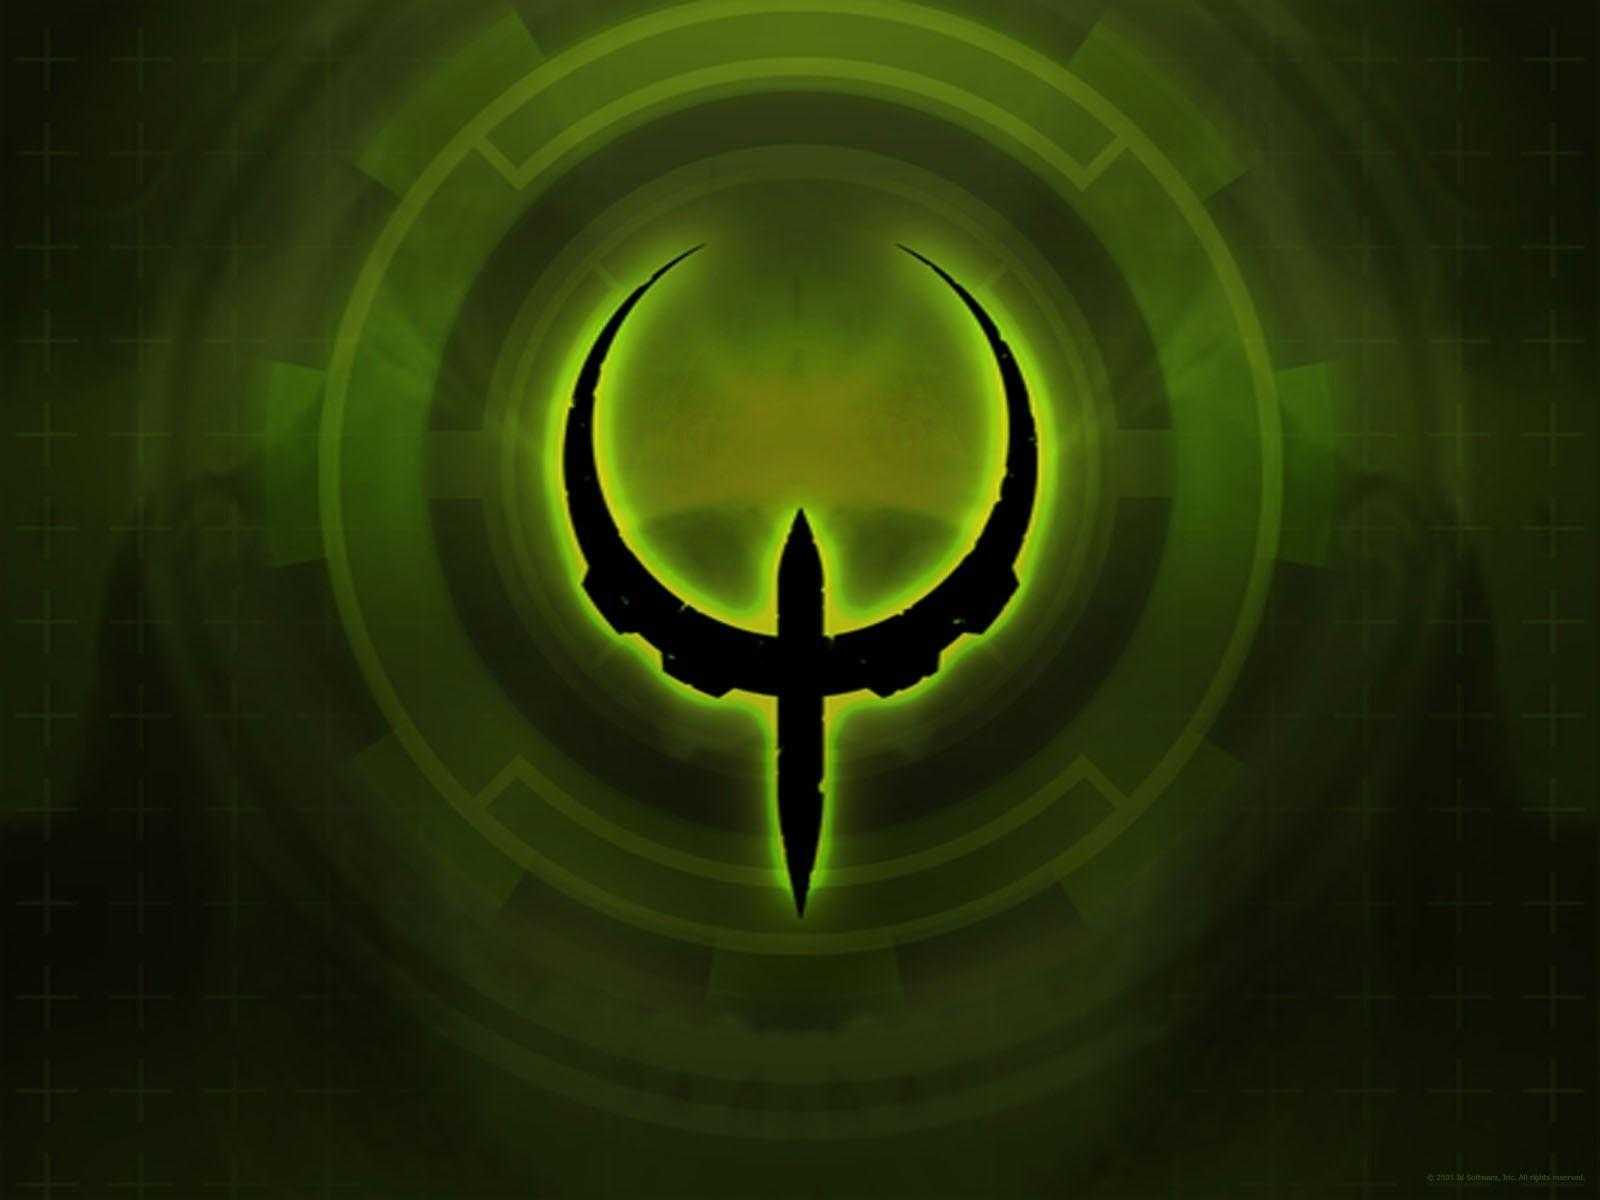 Quake 4 Wallpaper 1